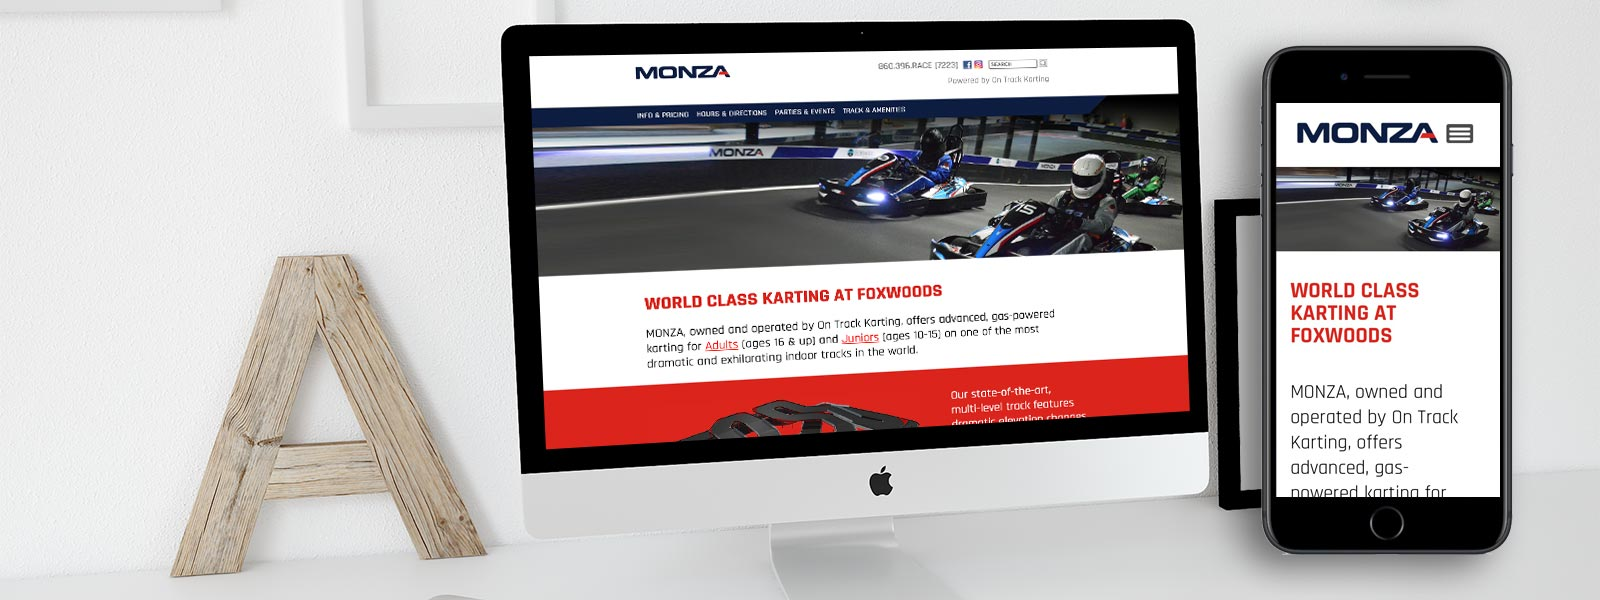 Monza Karting Website